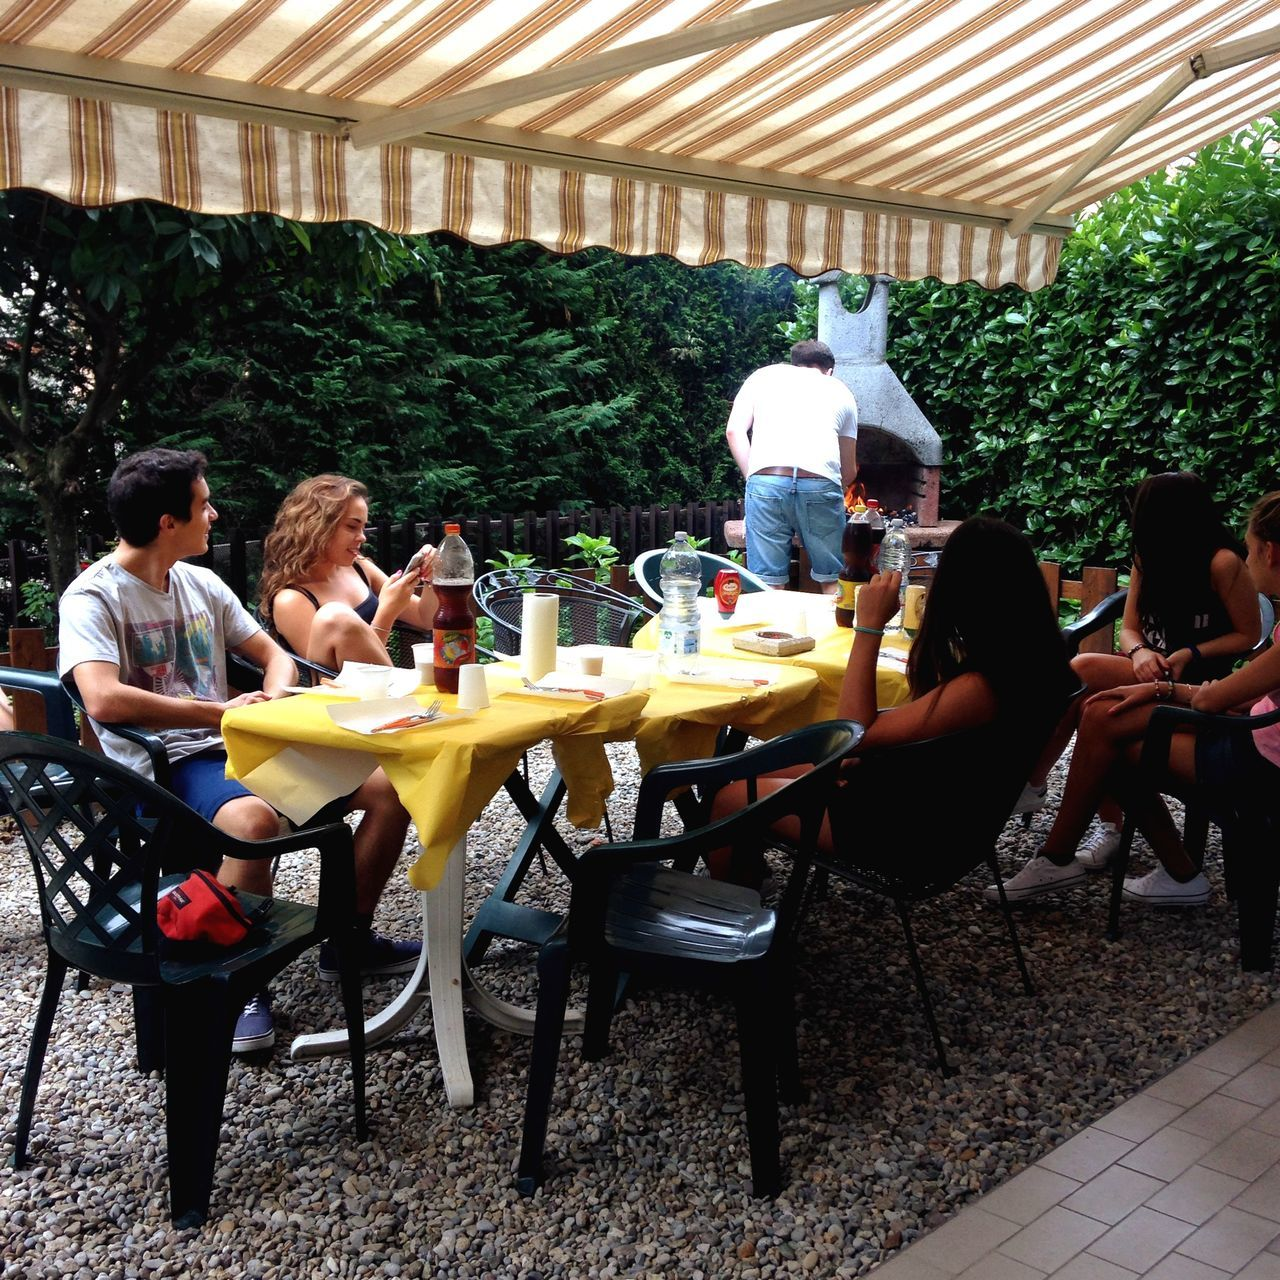 sitting, restaurant, real people, food and drink, togetherness, chair, table, men, casual clothing, full length, leisure activity, day, tree, lifestyles, cafe, outdoors, women, relaxation, friendship, food, eating, drink, large group of people, young adult, young women, people